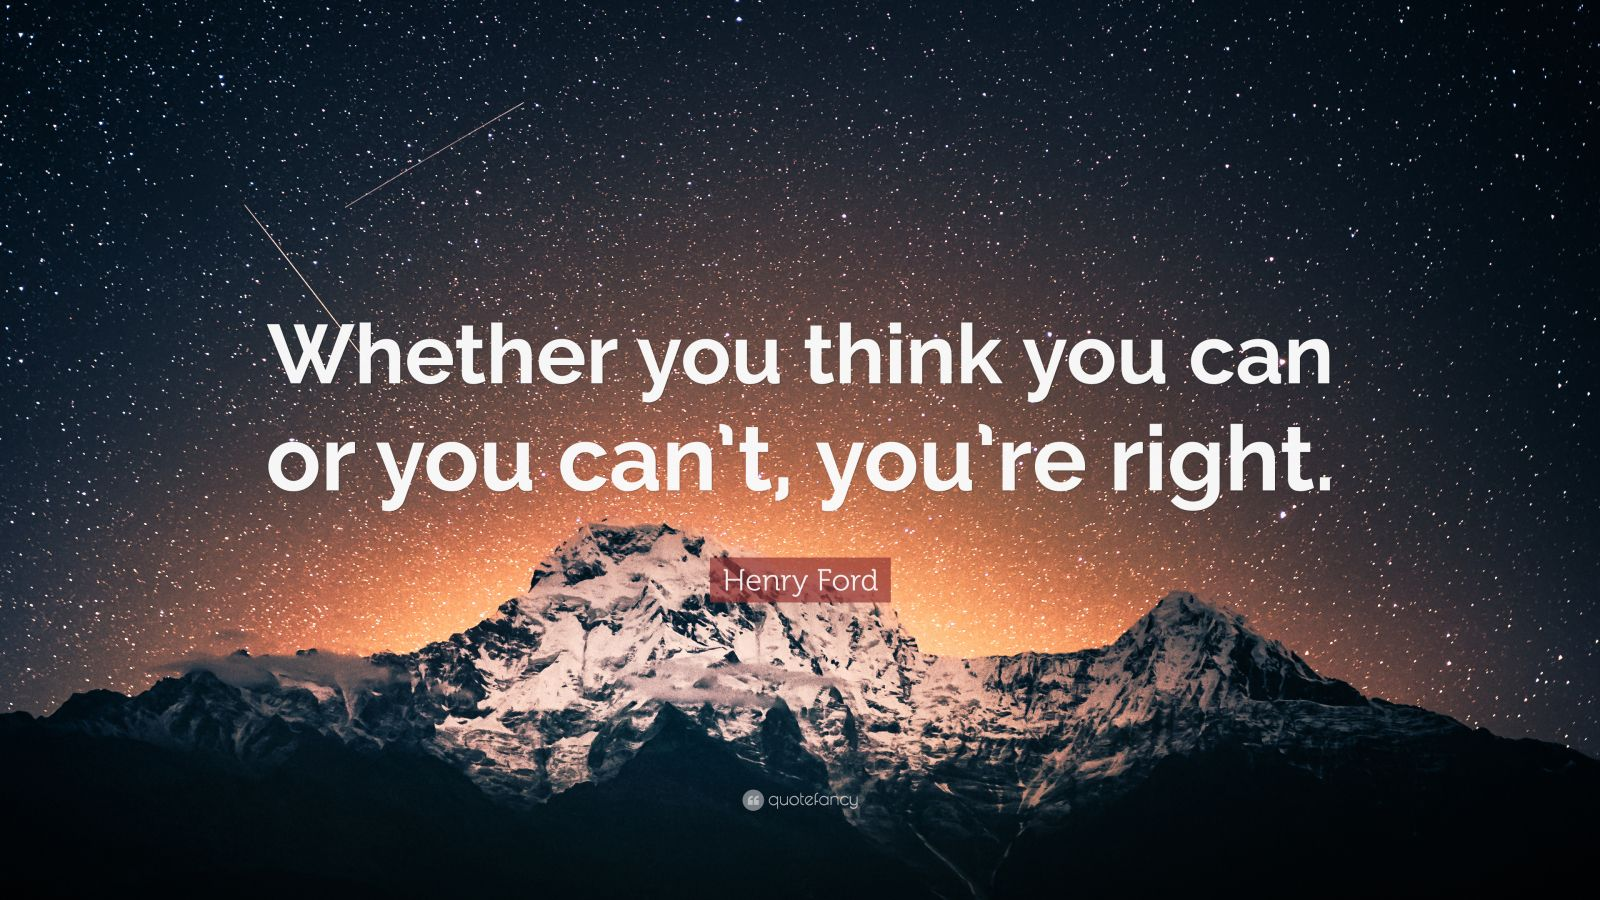 Push Yourself Quotes Wallpaper Henry Ford Quote Whether You Think You Can Or You Can T